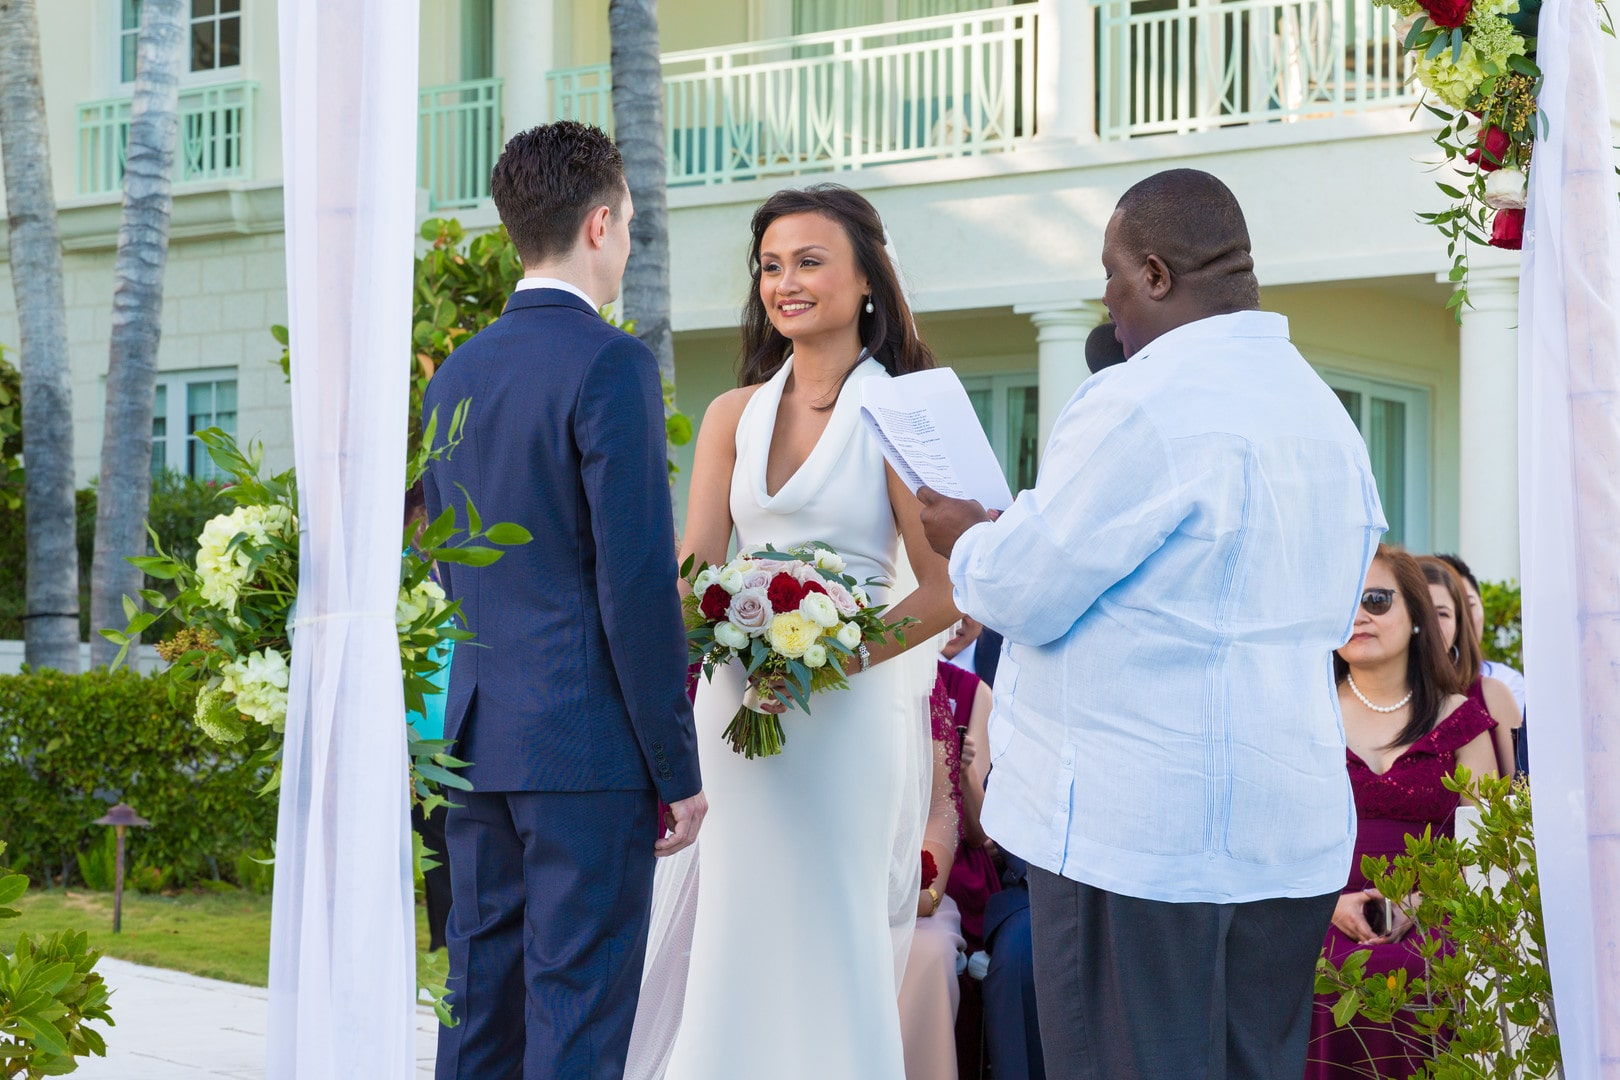 Faith and Nicho Tying Cultures in Turks & Caicos, Photography by Paradise Photography for Destination Wedding Blog Adriana Weddings